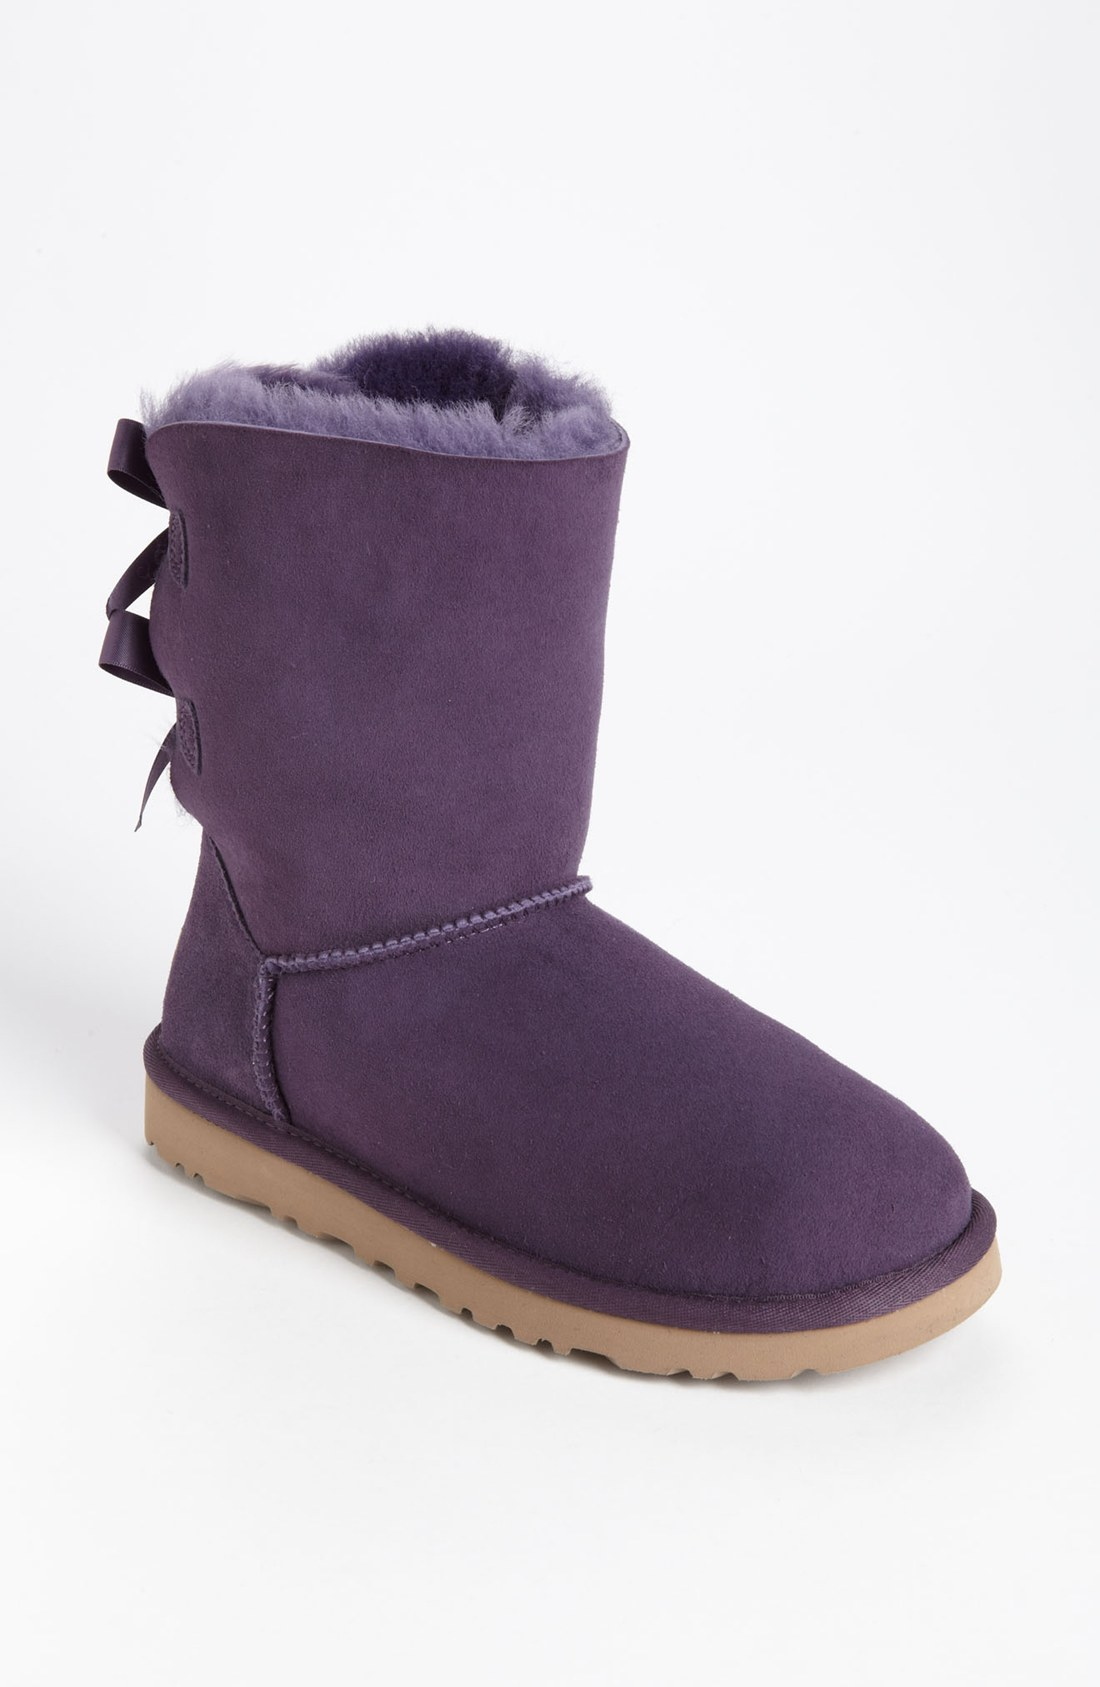 ugg bailey bow boot in purple purple velvet lyst. Black Bedroom Furniture Sets. Home Design Ideas